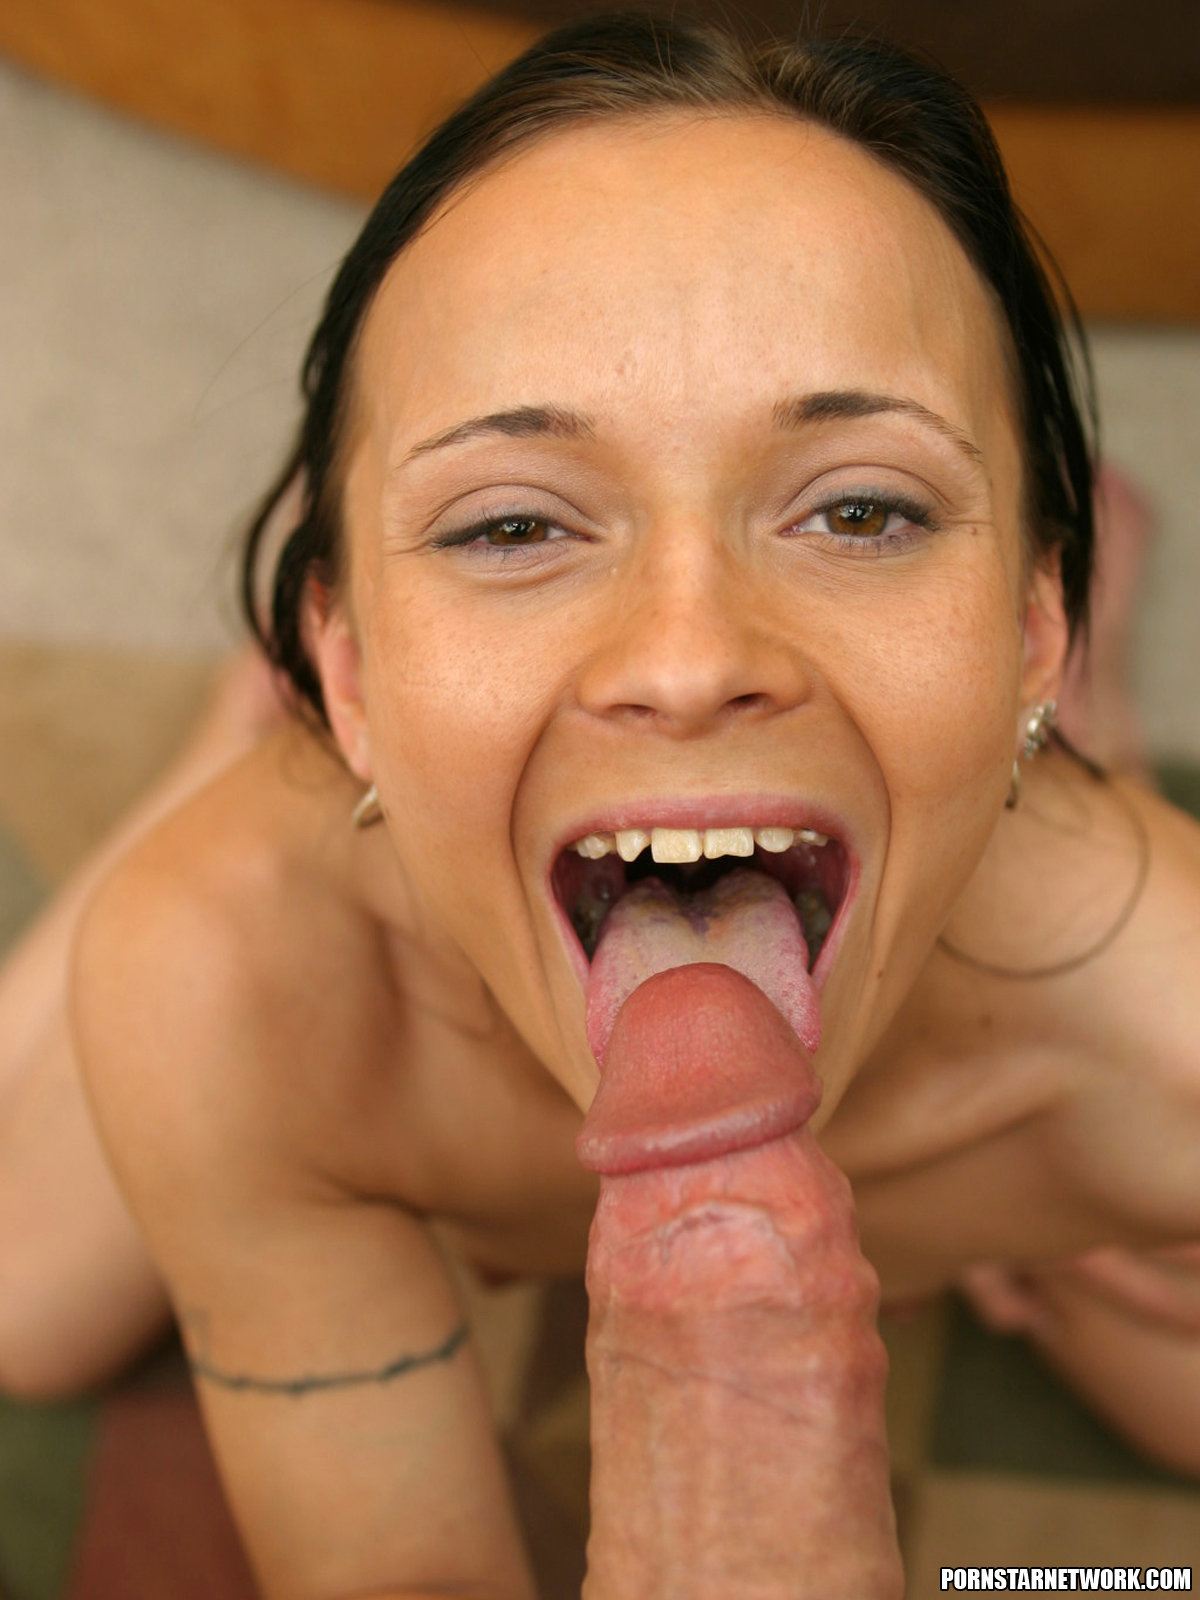 Brooklyn chase gets a monster creampie 7